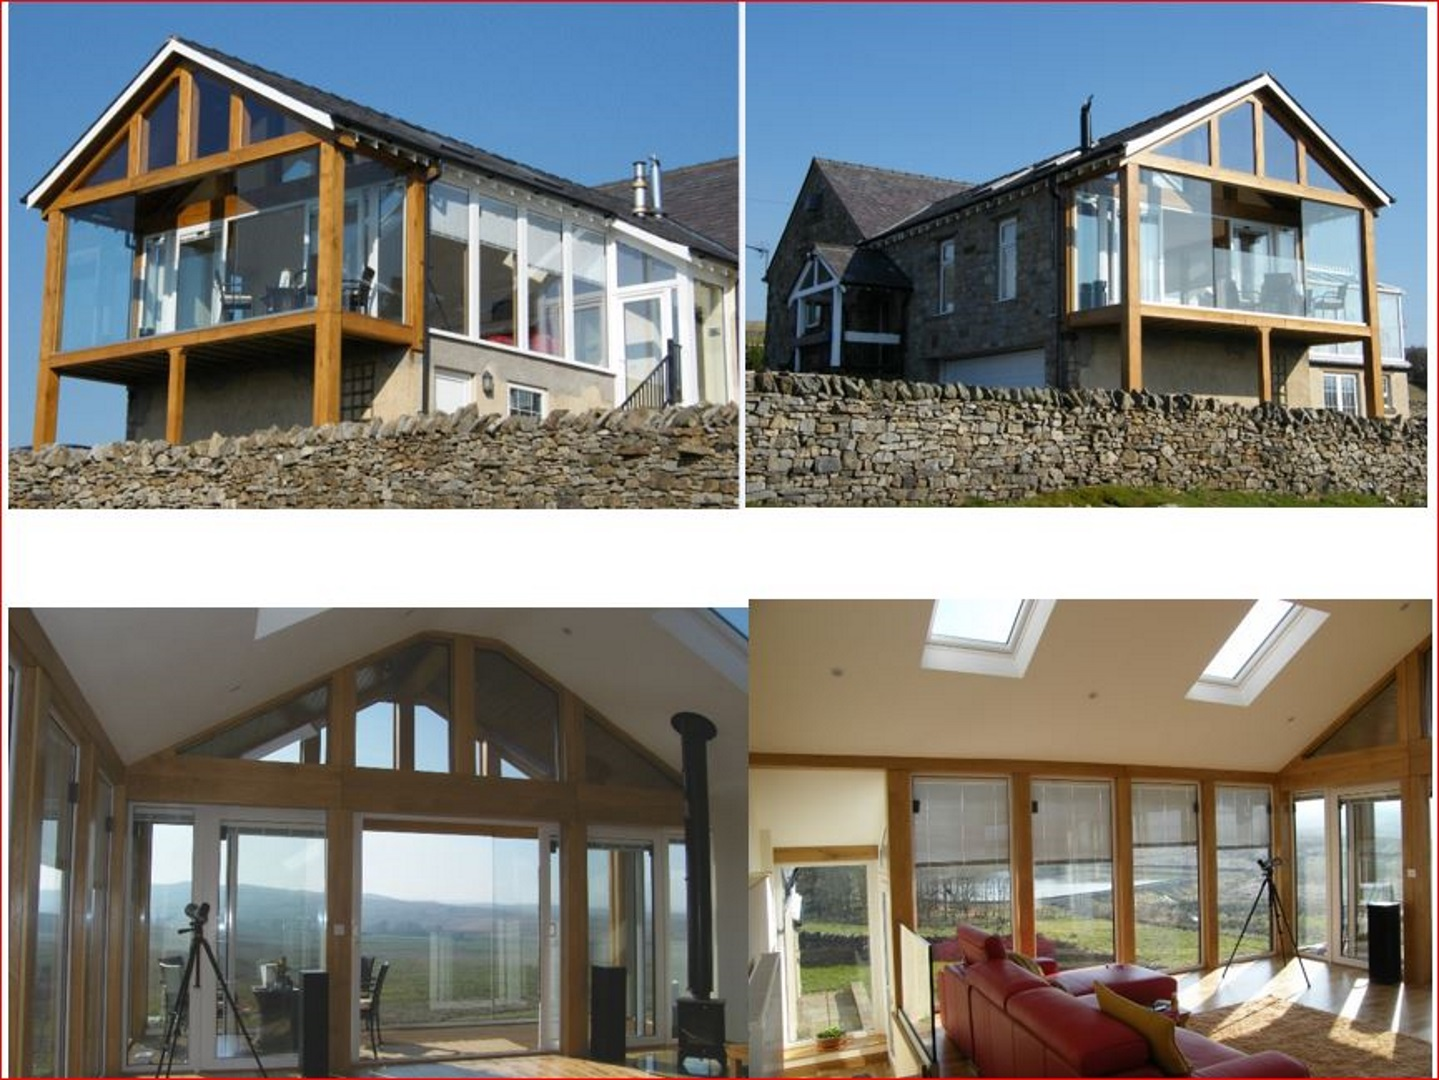 Before photo's + Matthew's original drawings & after photo's - Old School House, Shap